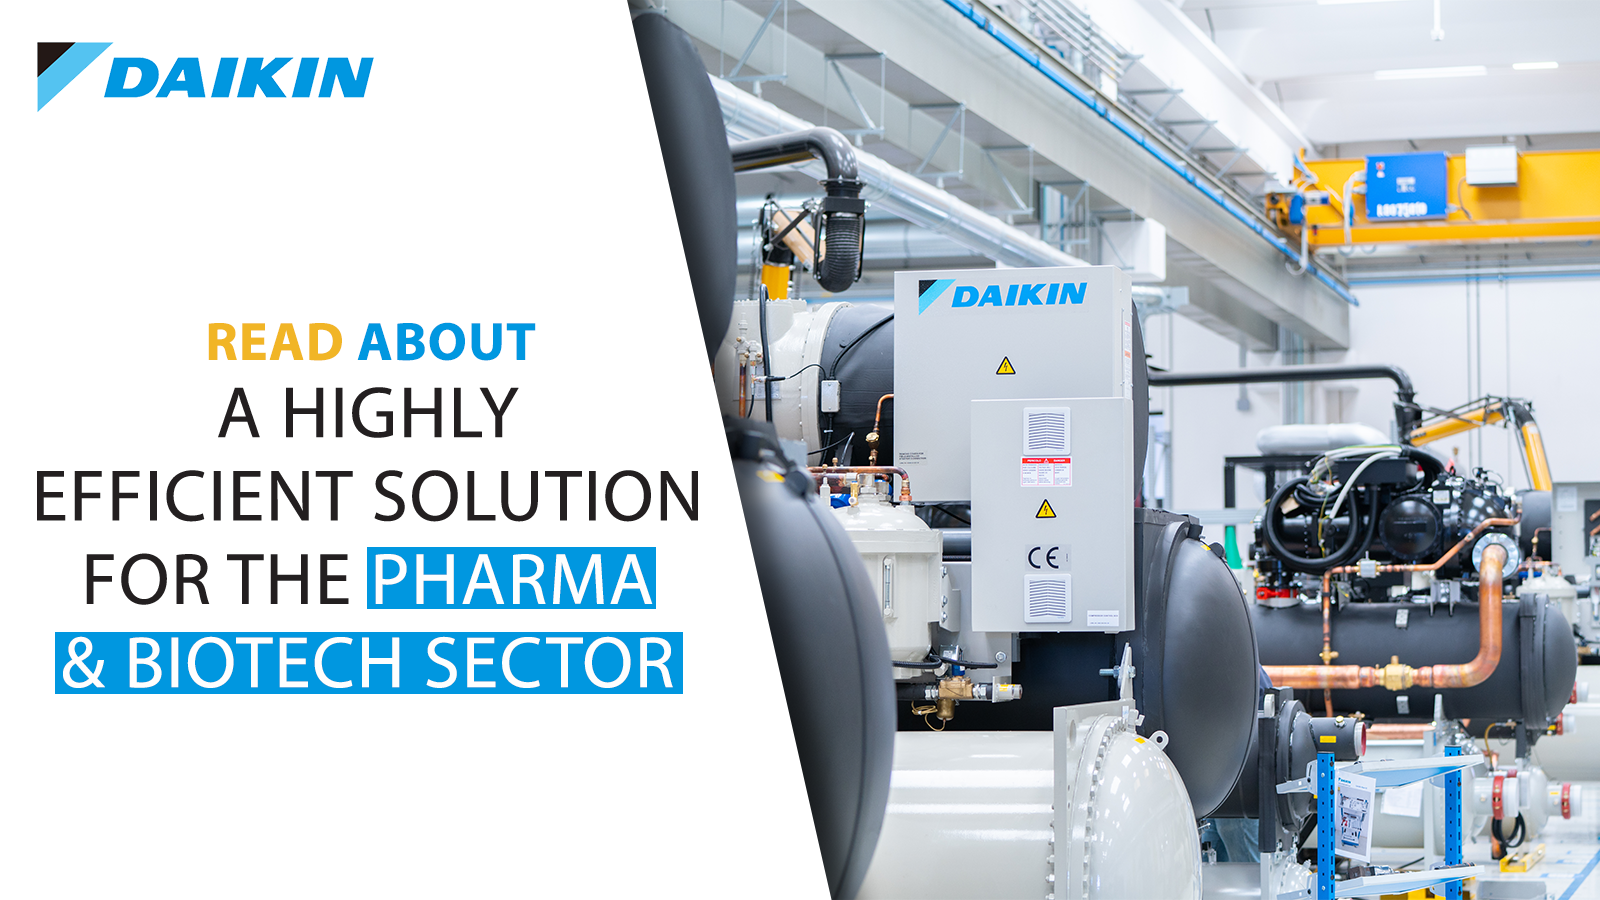 Pharma and Biotech sector